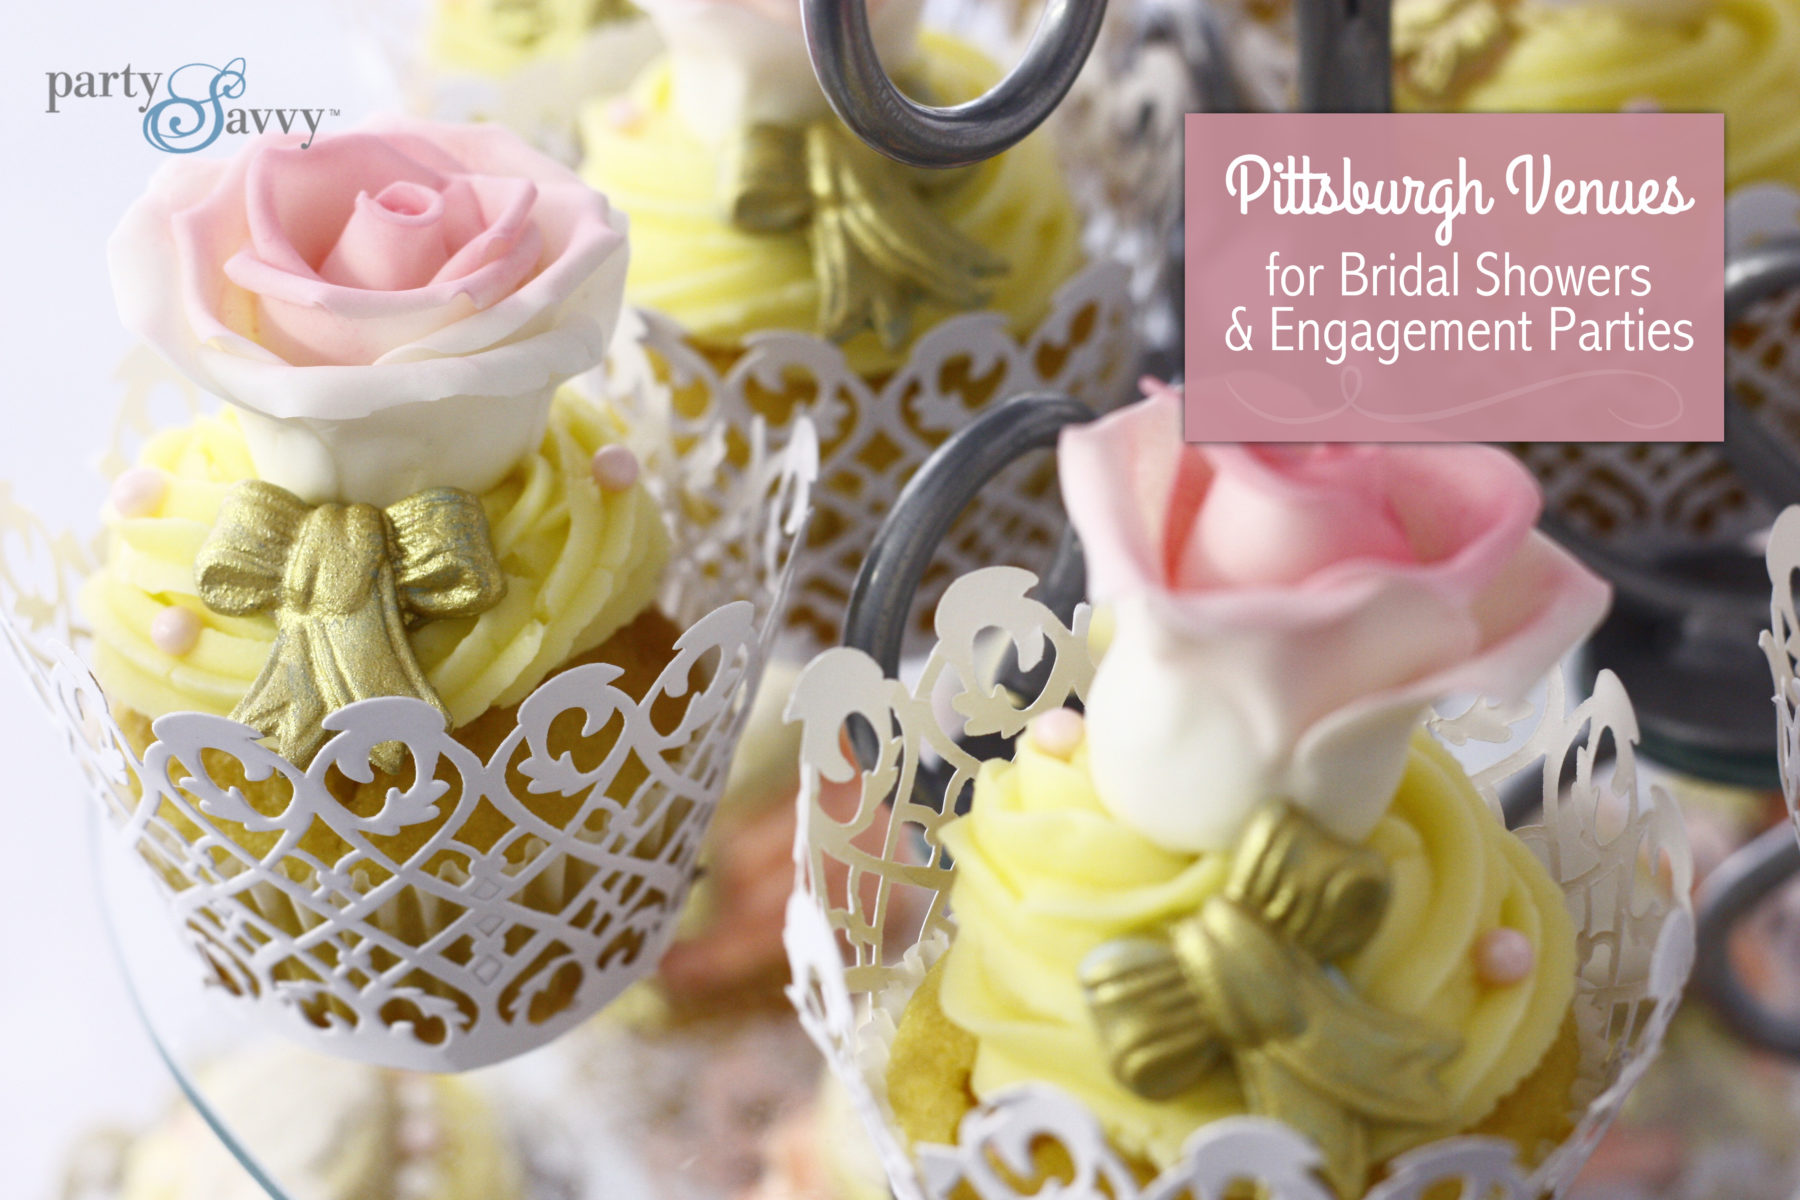 Pittsburgh Venues For Engagement Parties Bridal Showers